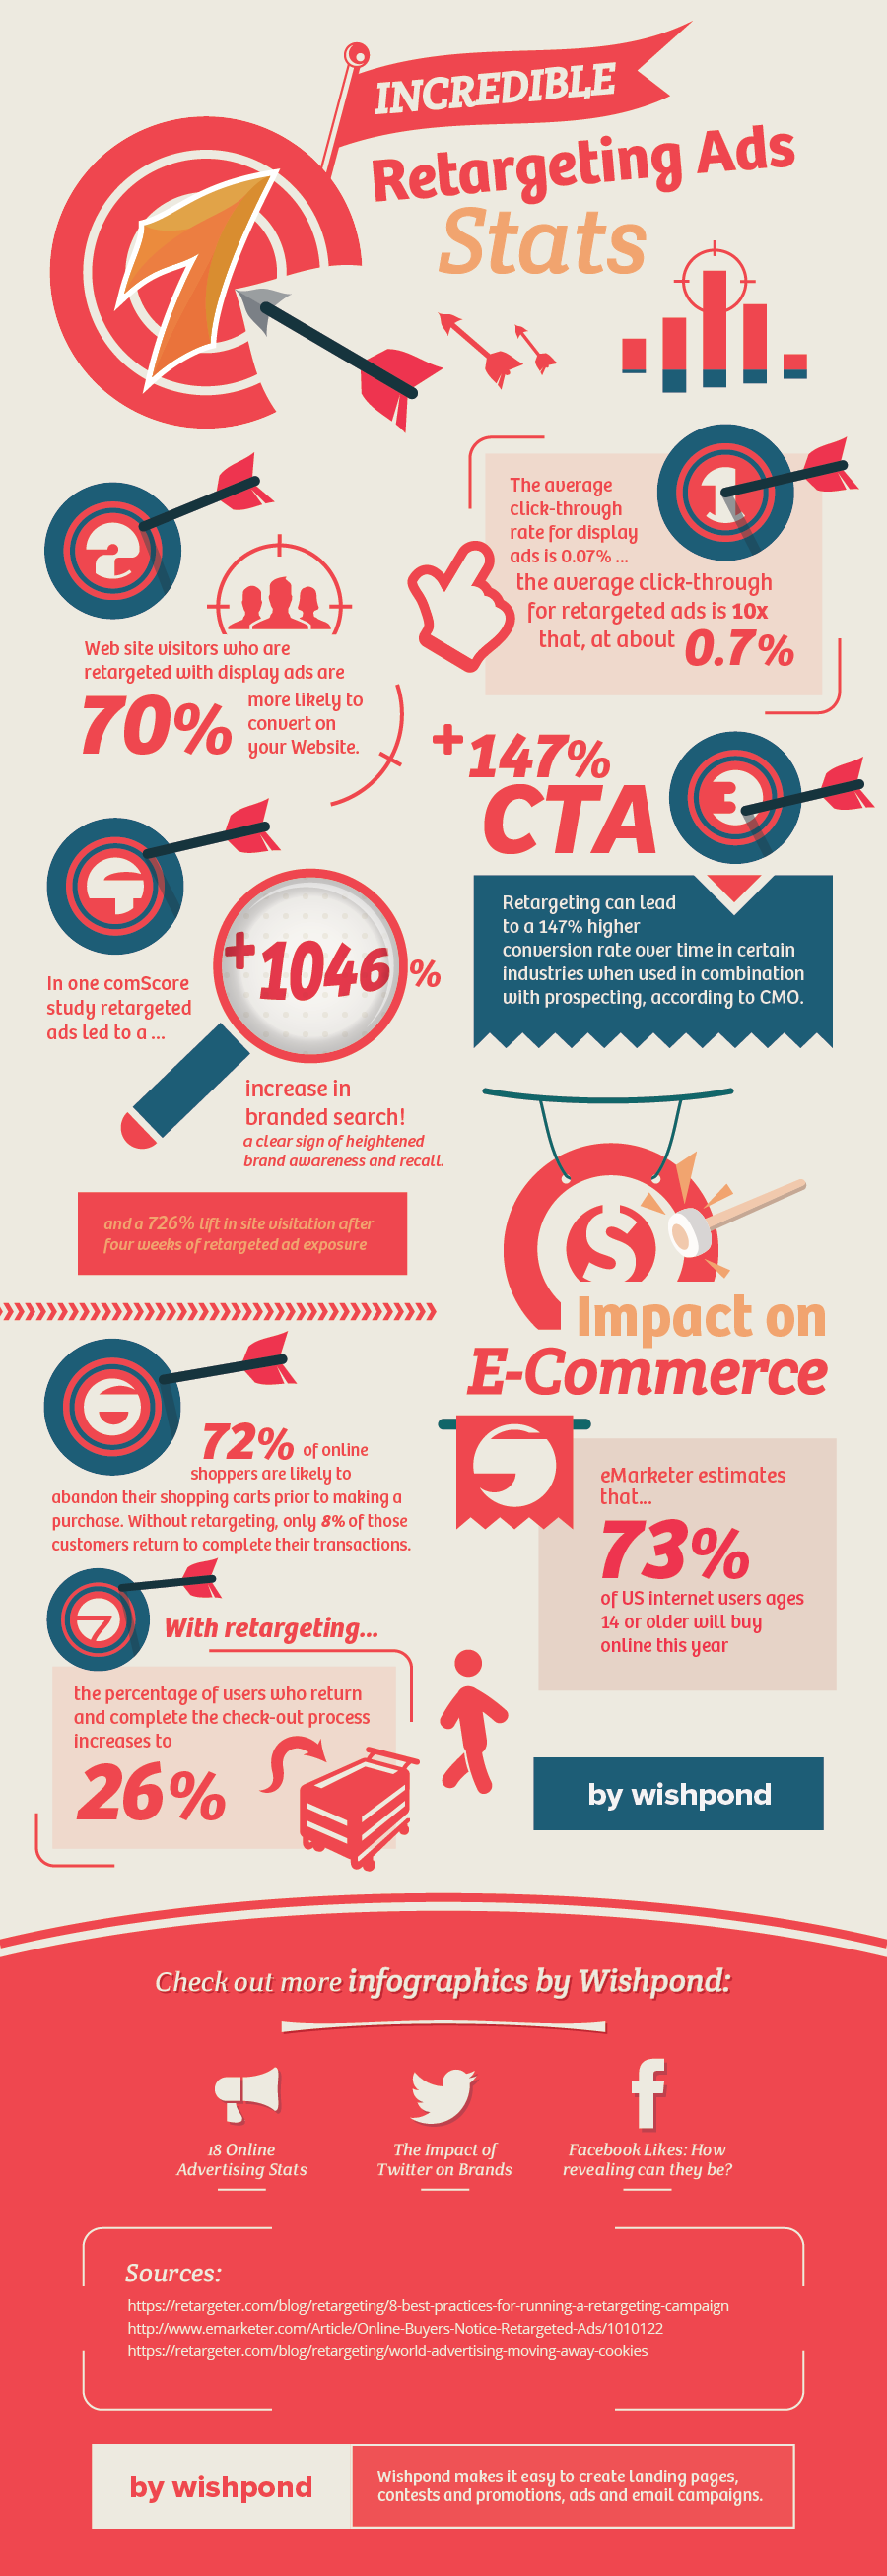 Image from: https://yourescapefrom9to5.com/retargeting-ad-statistics-infographic